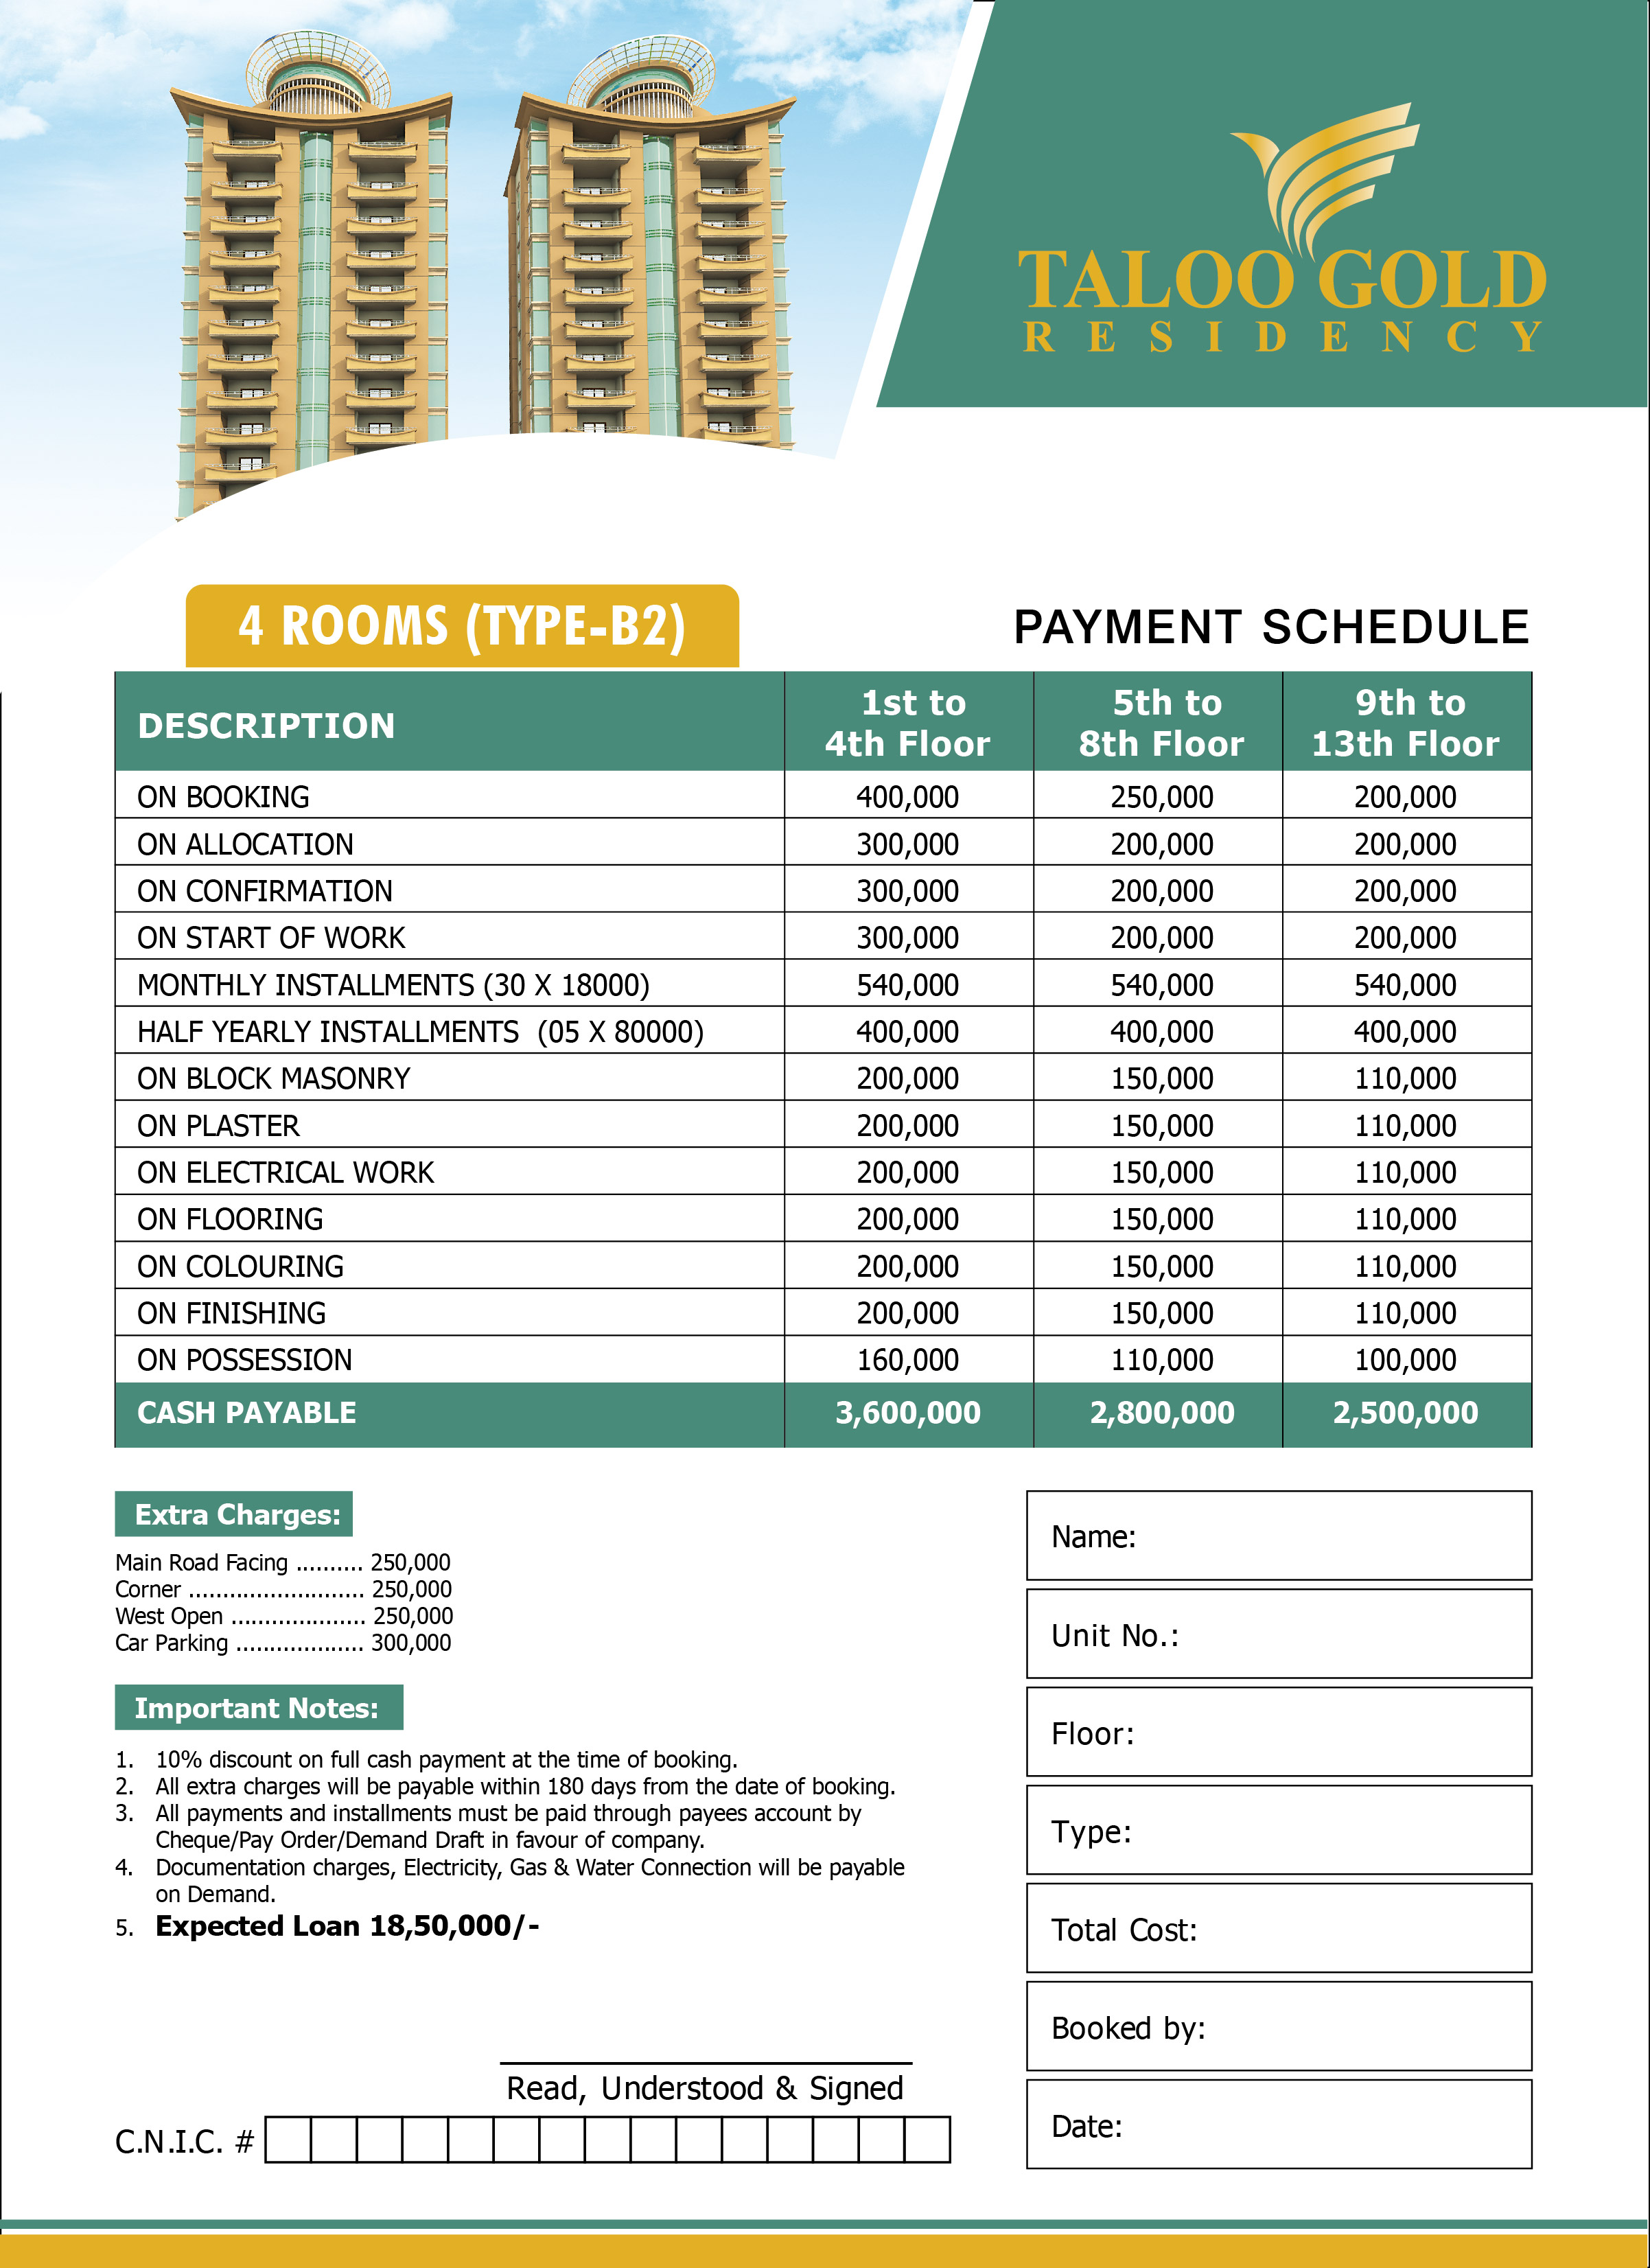 Taloo-Gold-Residency-Pay-Sch-4-ROOMS-Type-B2-30-3-2017-01